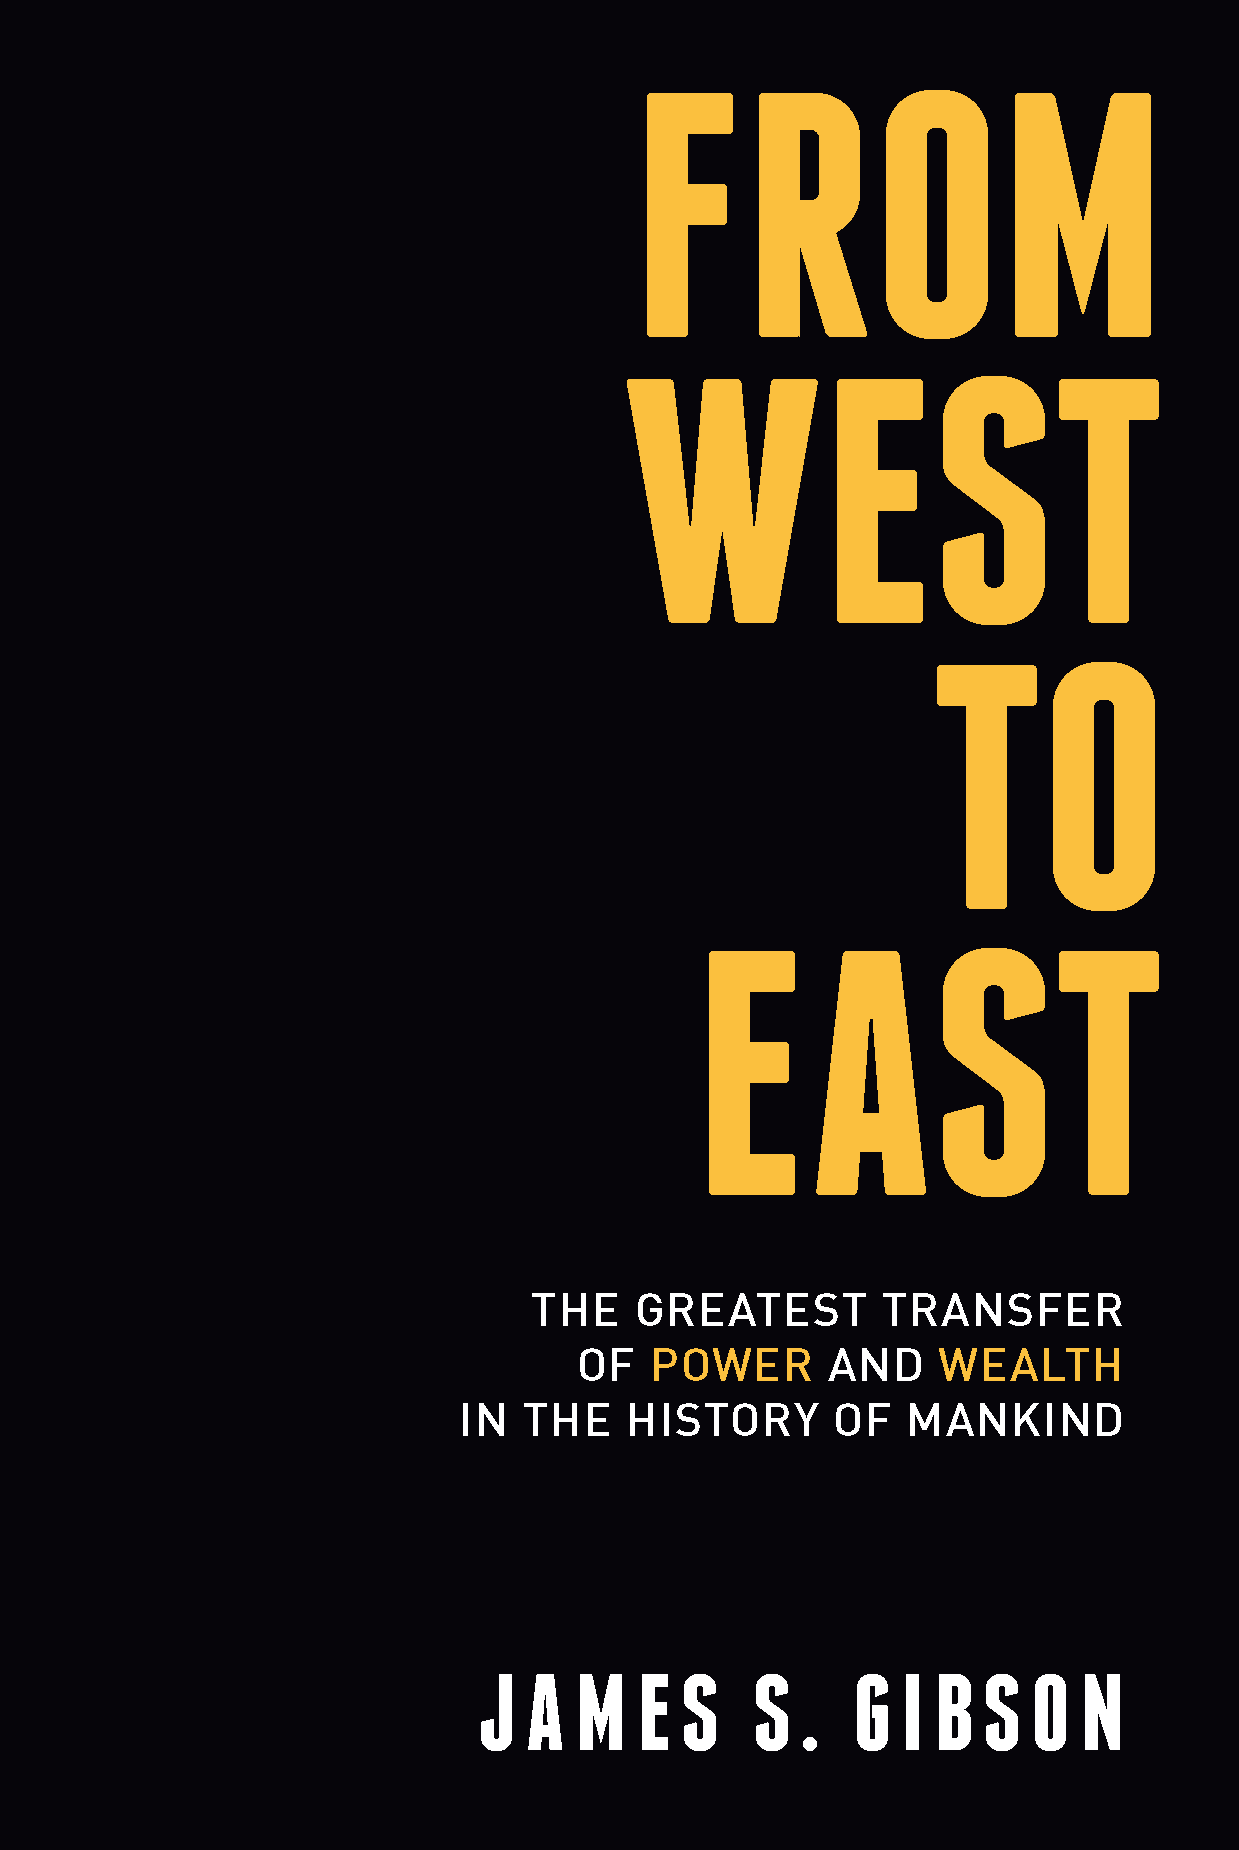 From West to East book available from Amazon